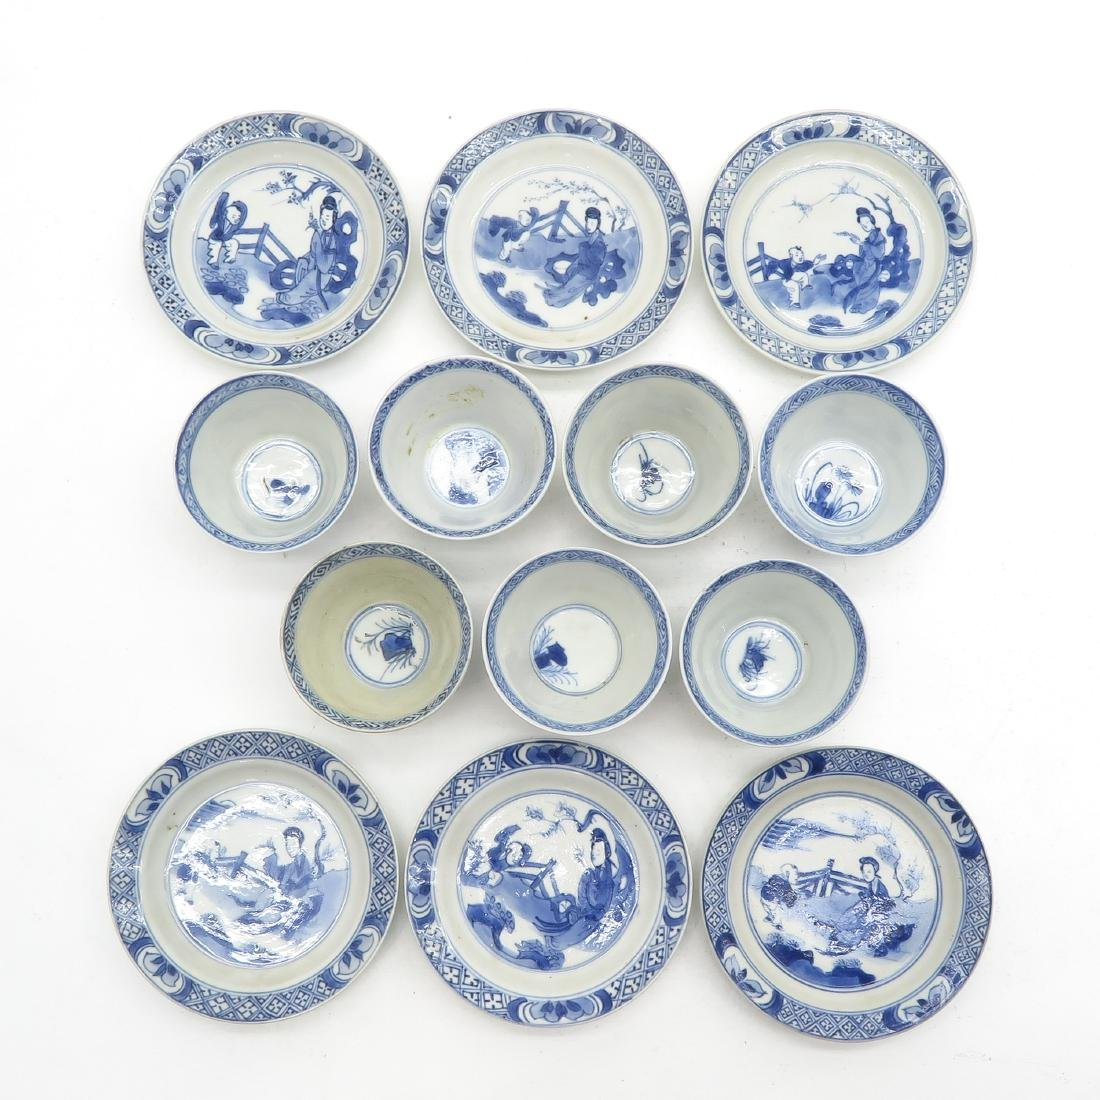 Lot of Cups and Saucers - 5